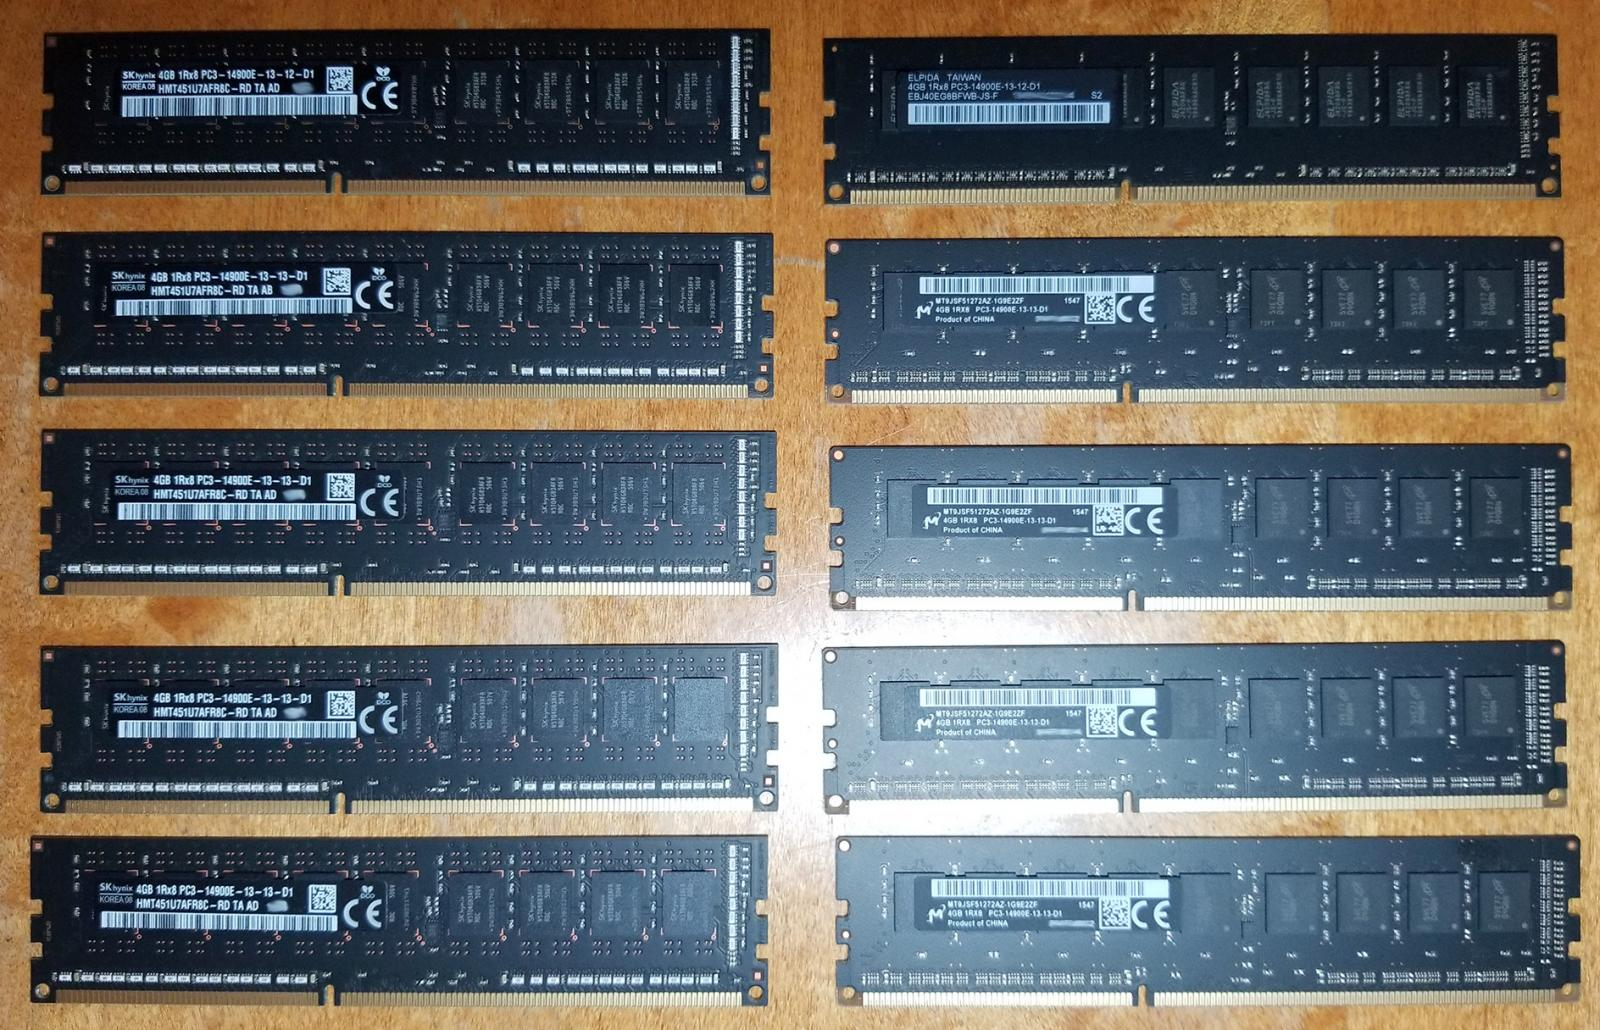 Photo of 16GB OEM ram kits (4x 4GB) 1866Mhz DDR3 ECC unbuffered (2 remain)